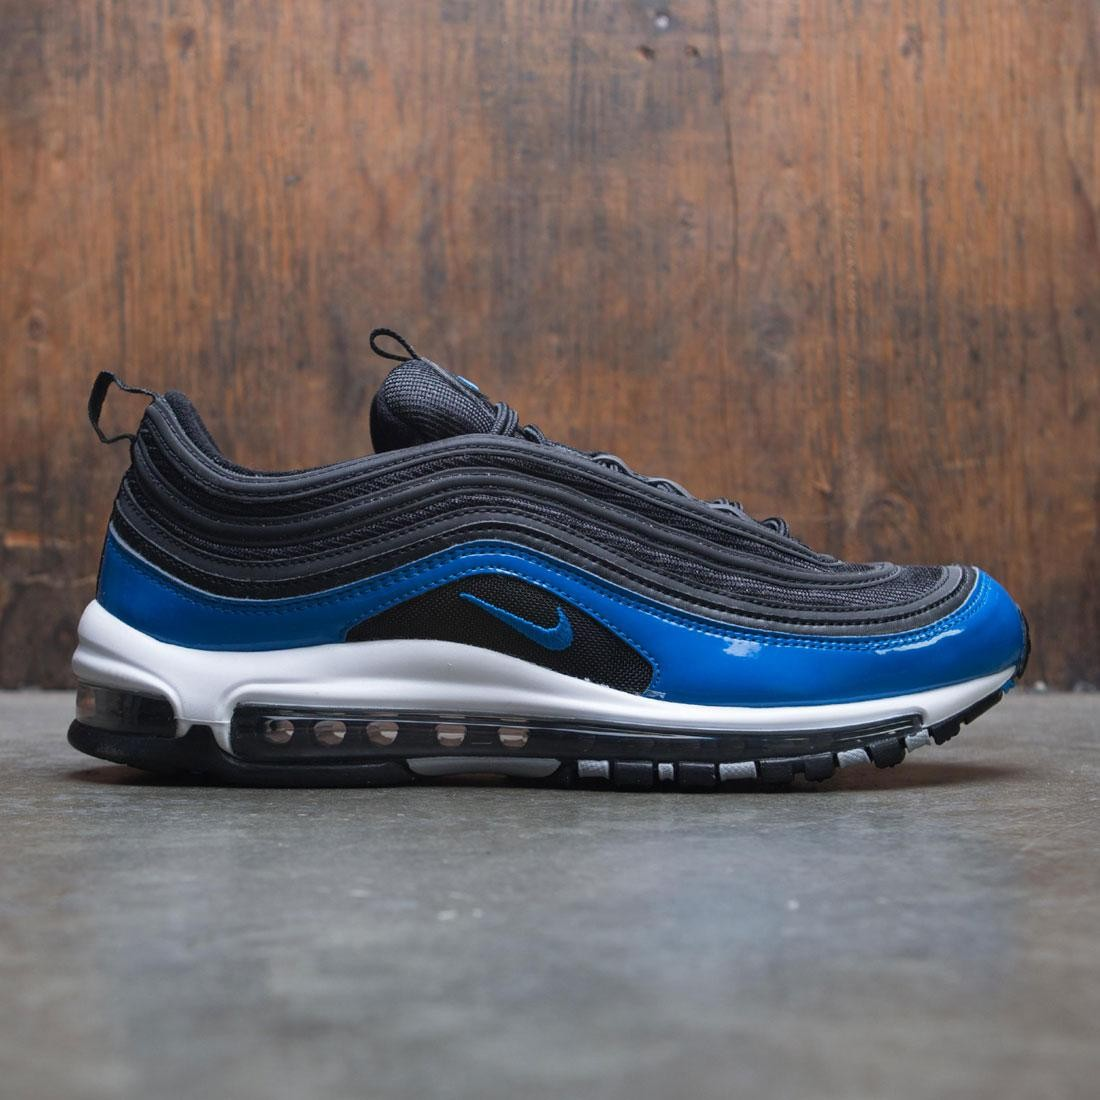 1d52b6eaf8bc7 nike men air max 97 black blue nebula wolf grey white